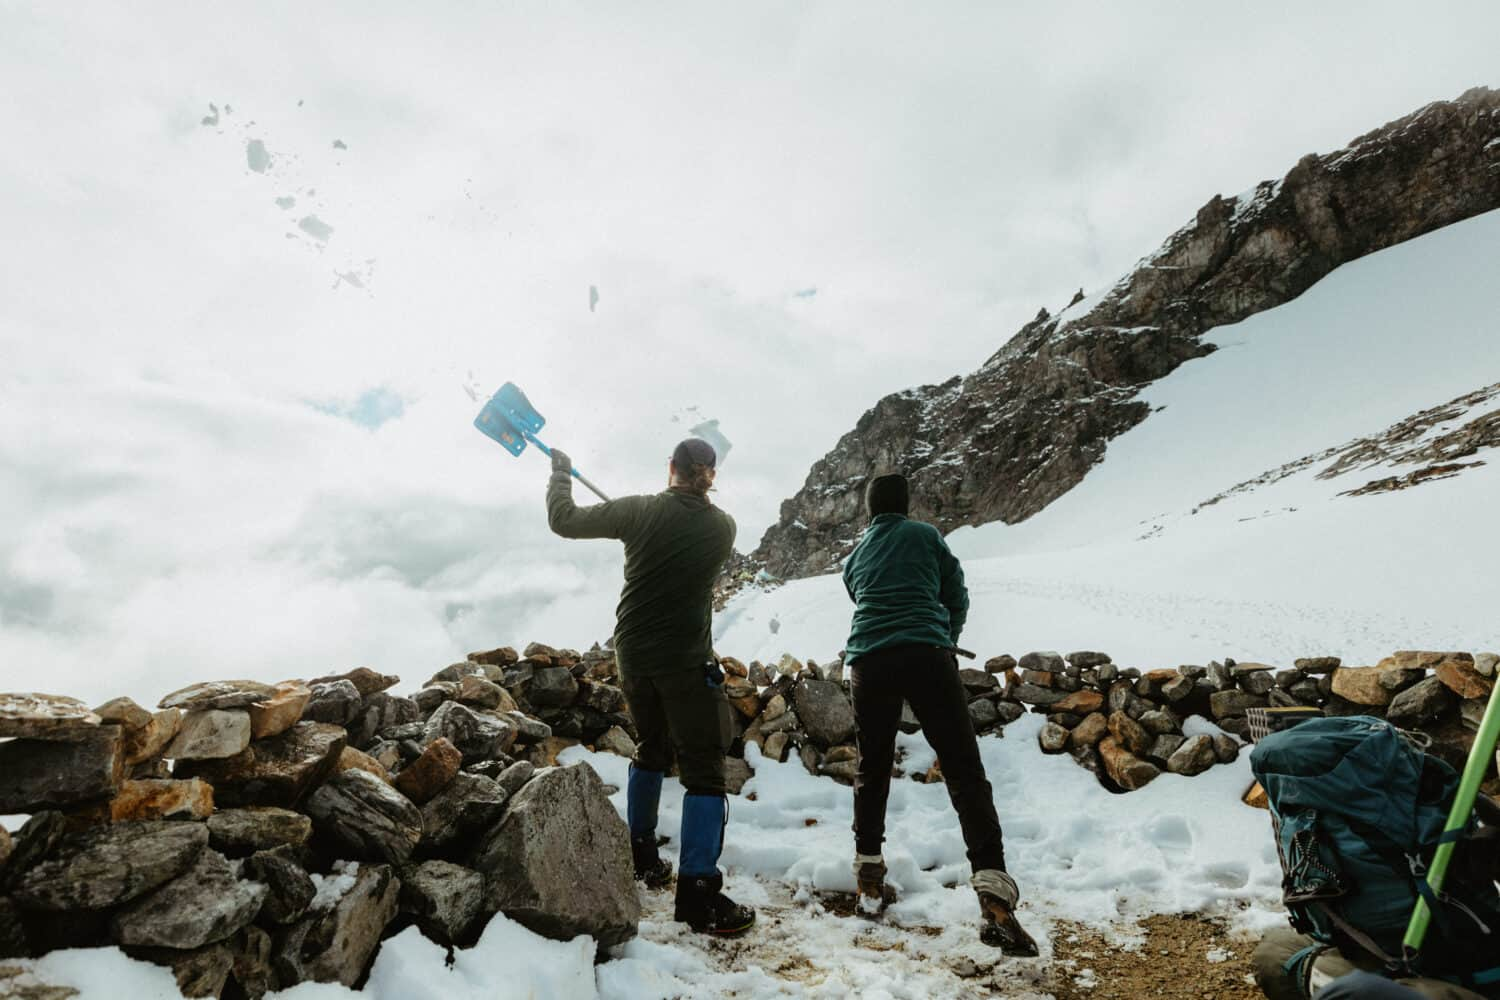 Shoveling snow out of the rock ring structures at Sahale Glacier Camp